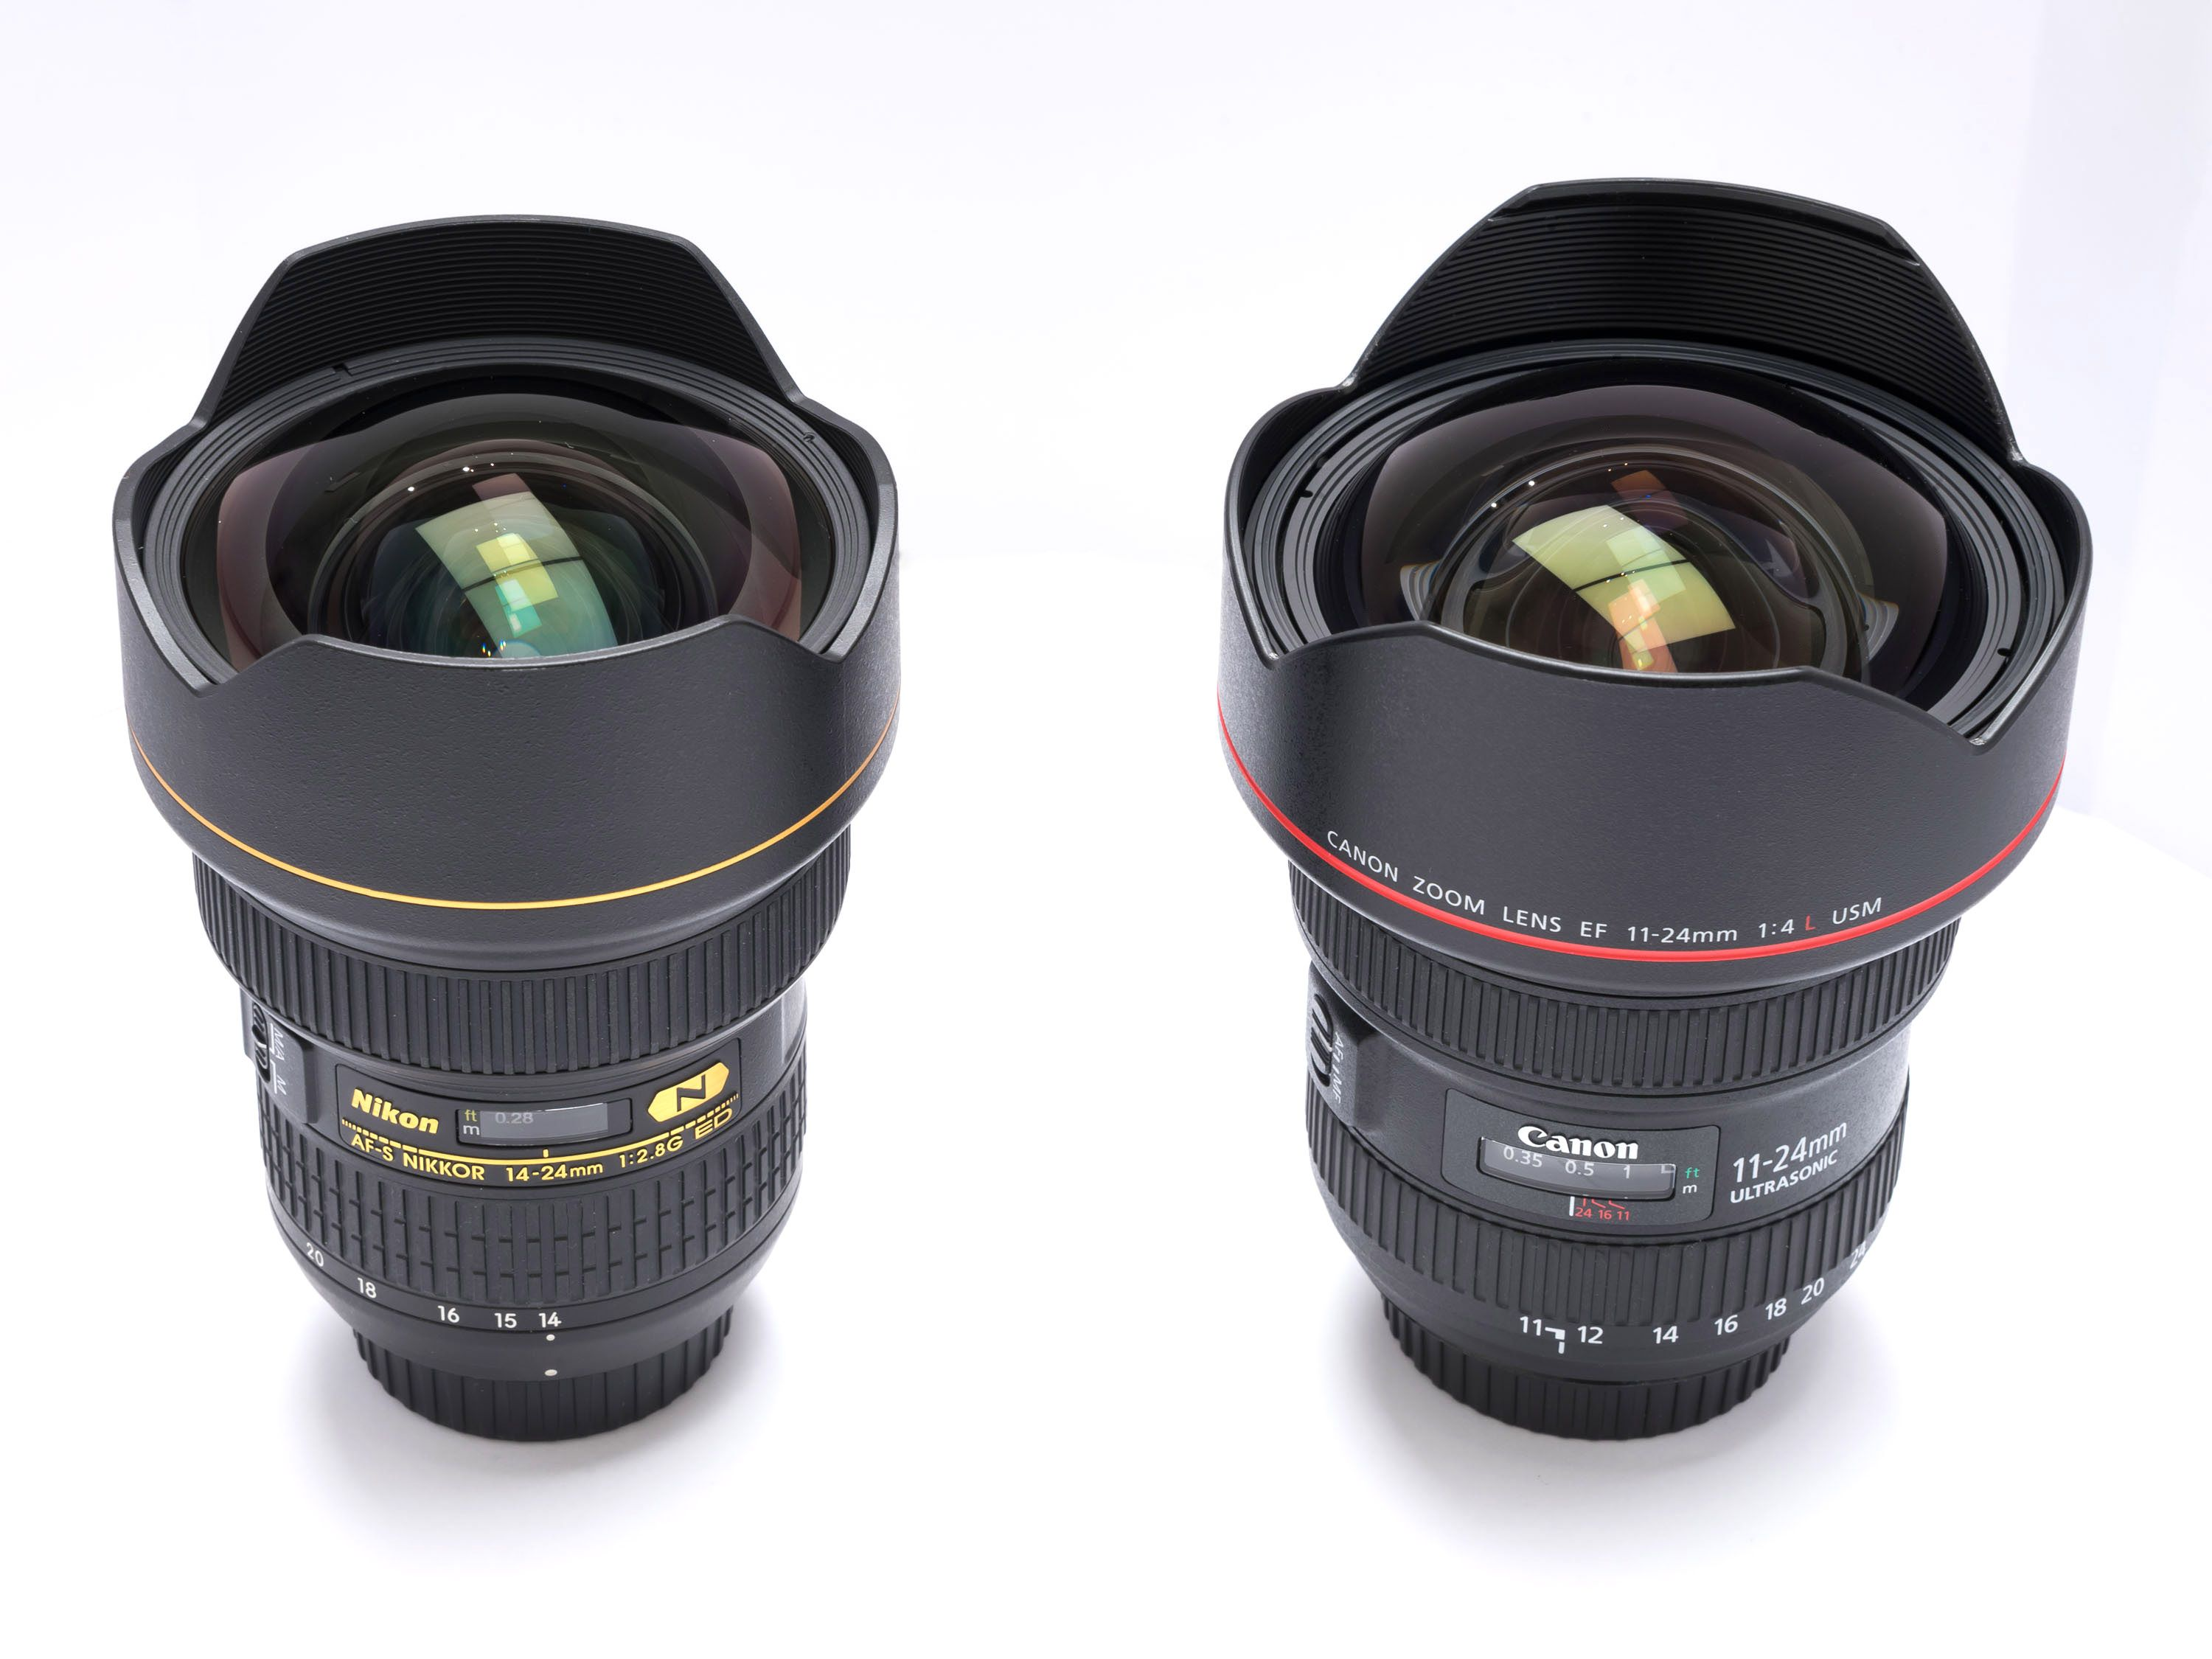 Pin On Latest Models From The World Of Photo Equipment